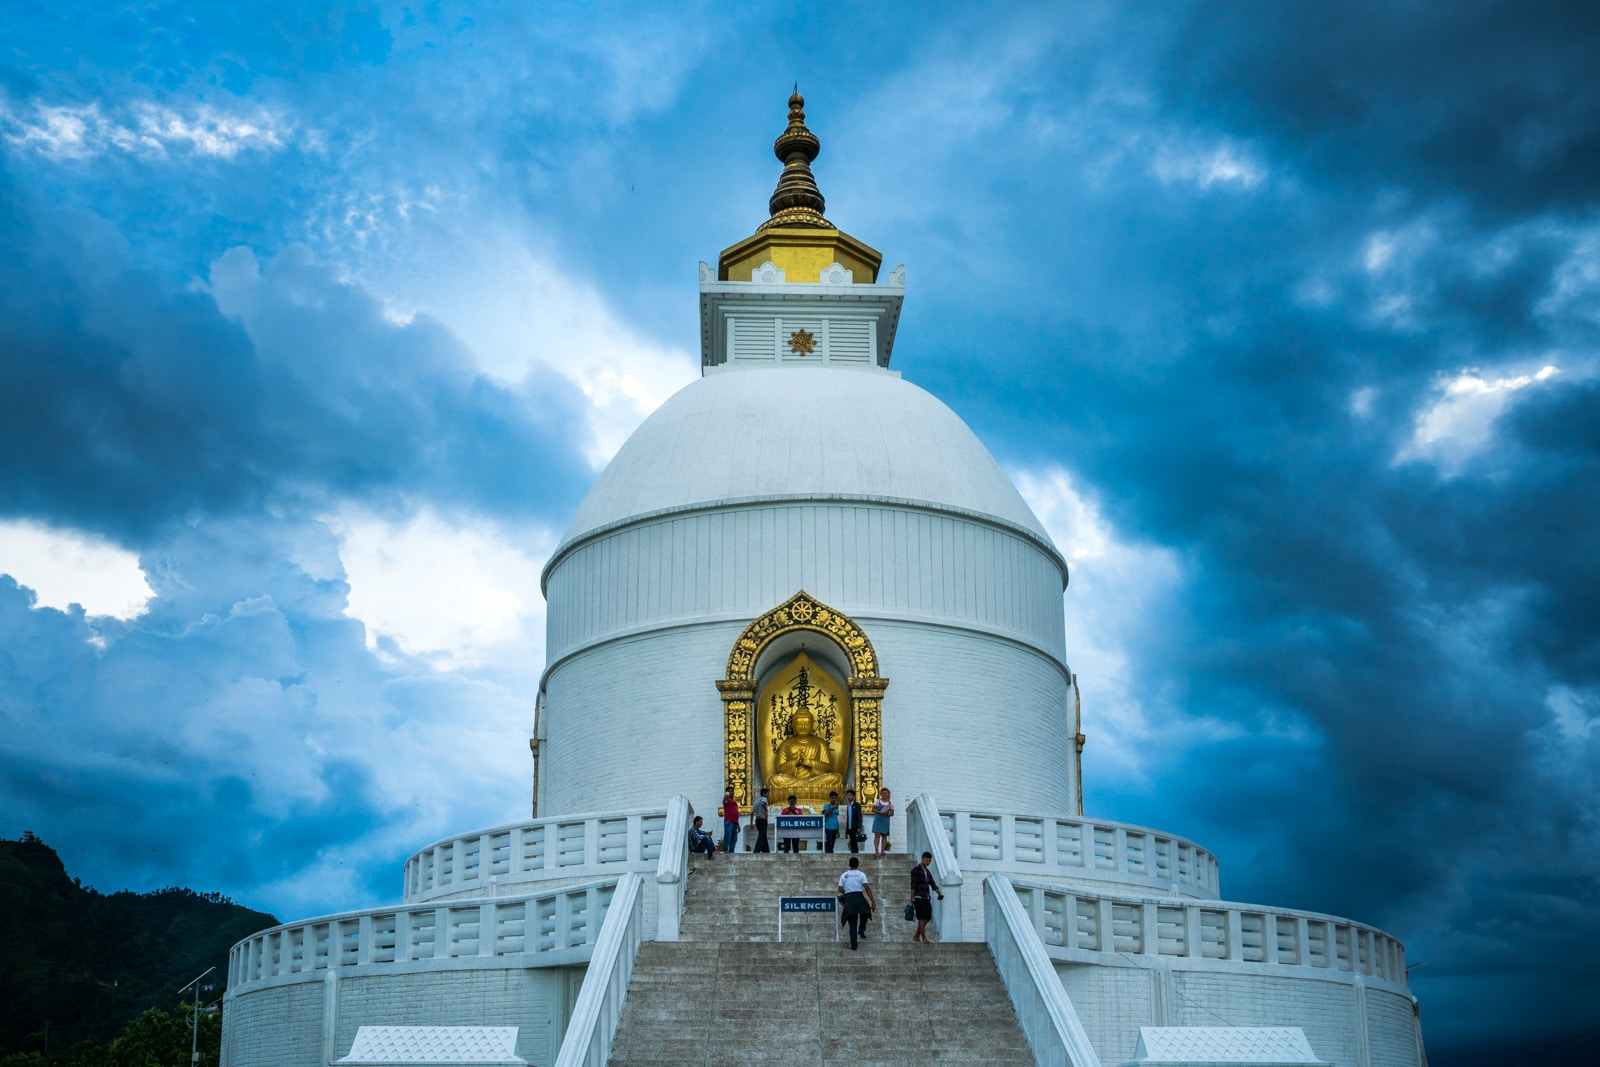 Travel in Nepal during monsoon season - World Peace Pagoda in Pokhara during rain - Lost With Purpose travel blog